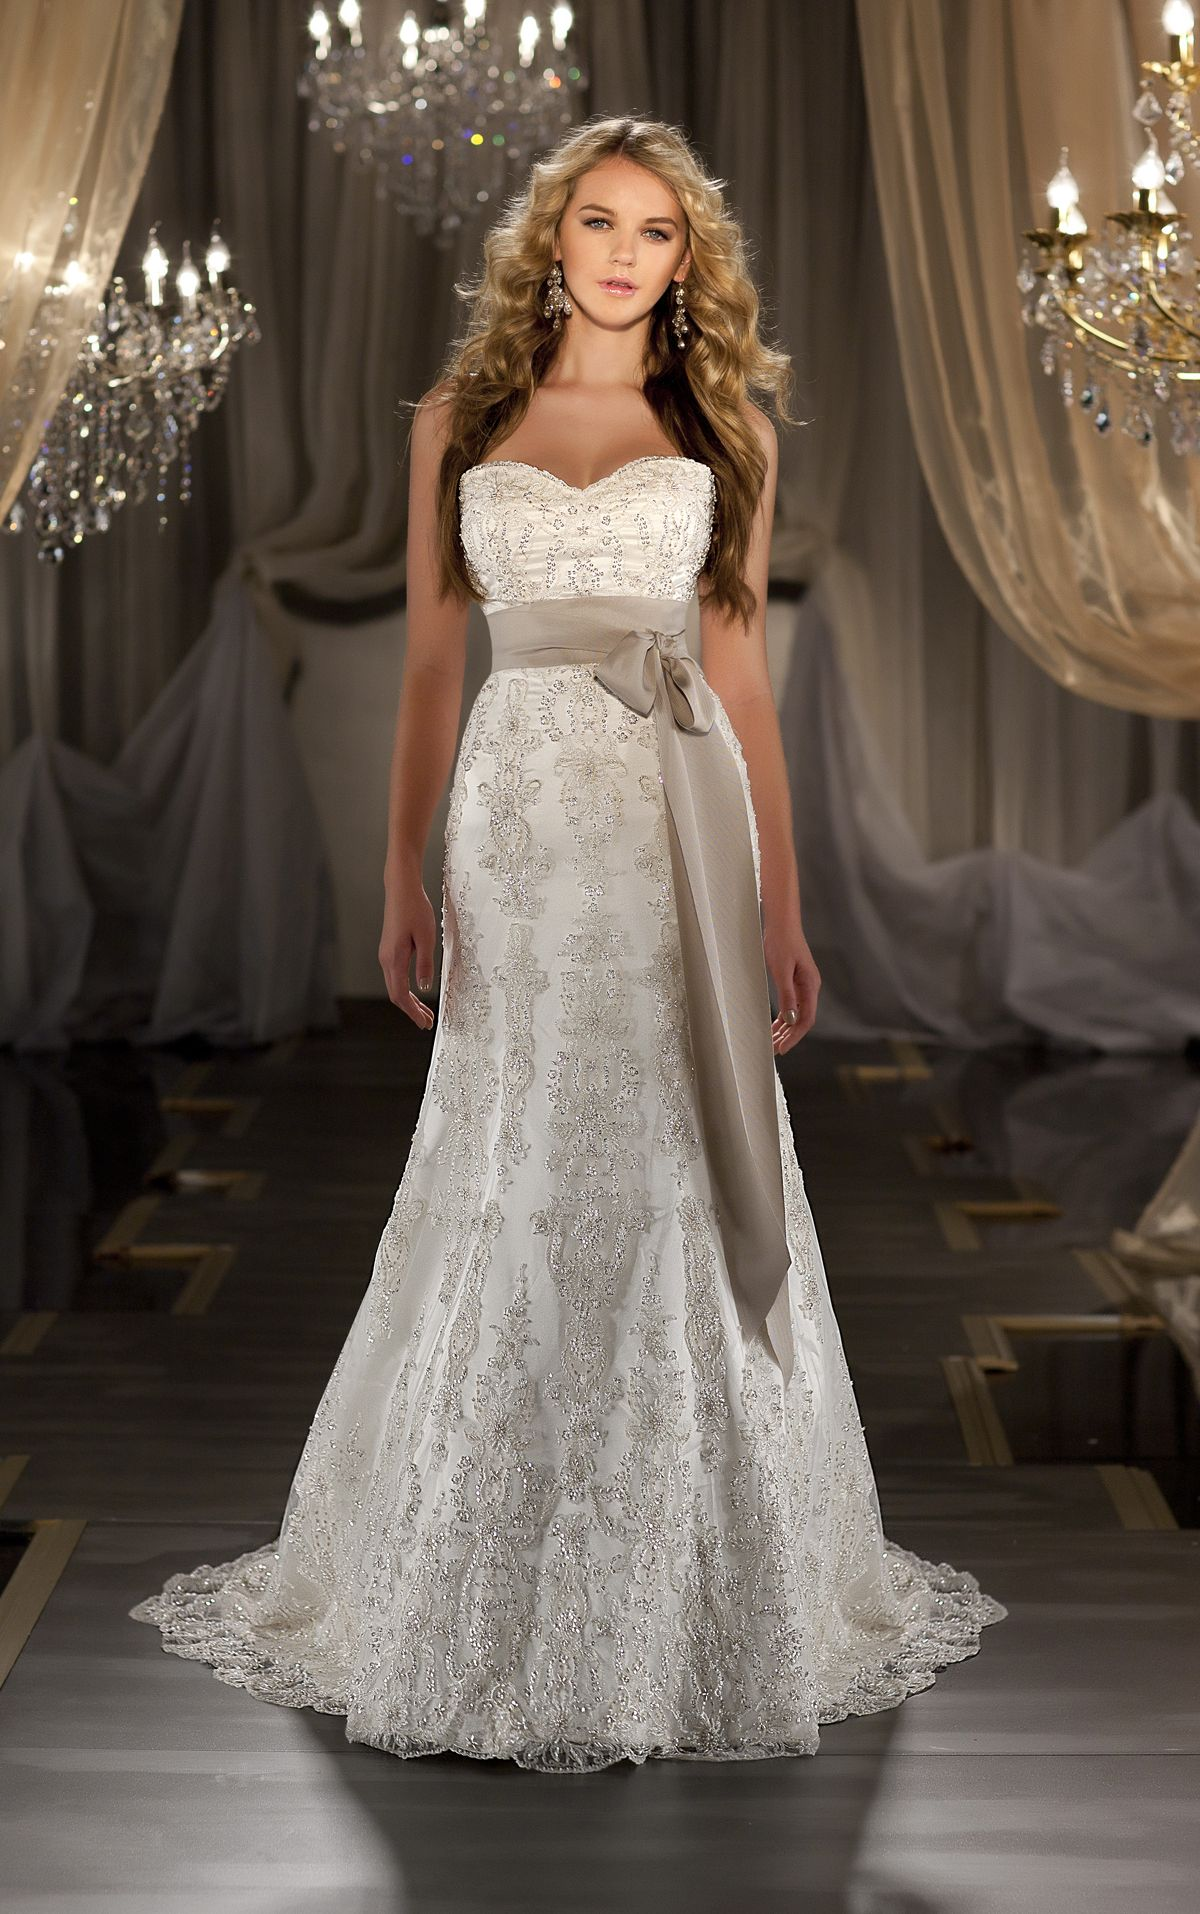 Flowy lace wedding dresses sweetheart neckline matching ribbon with